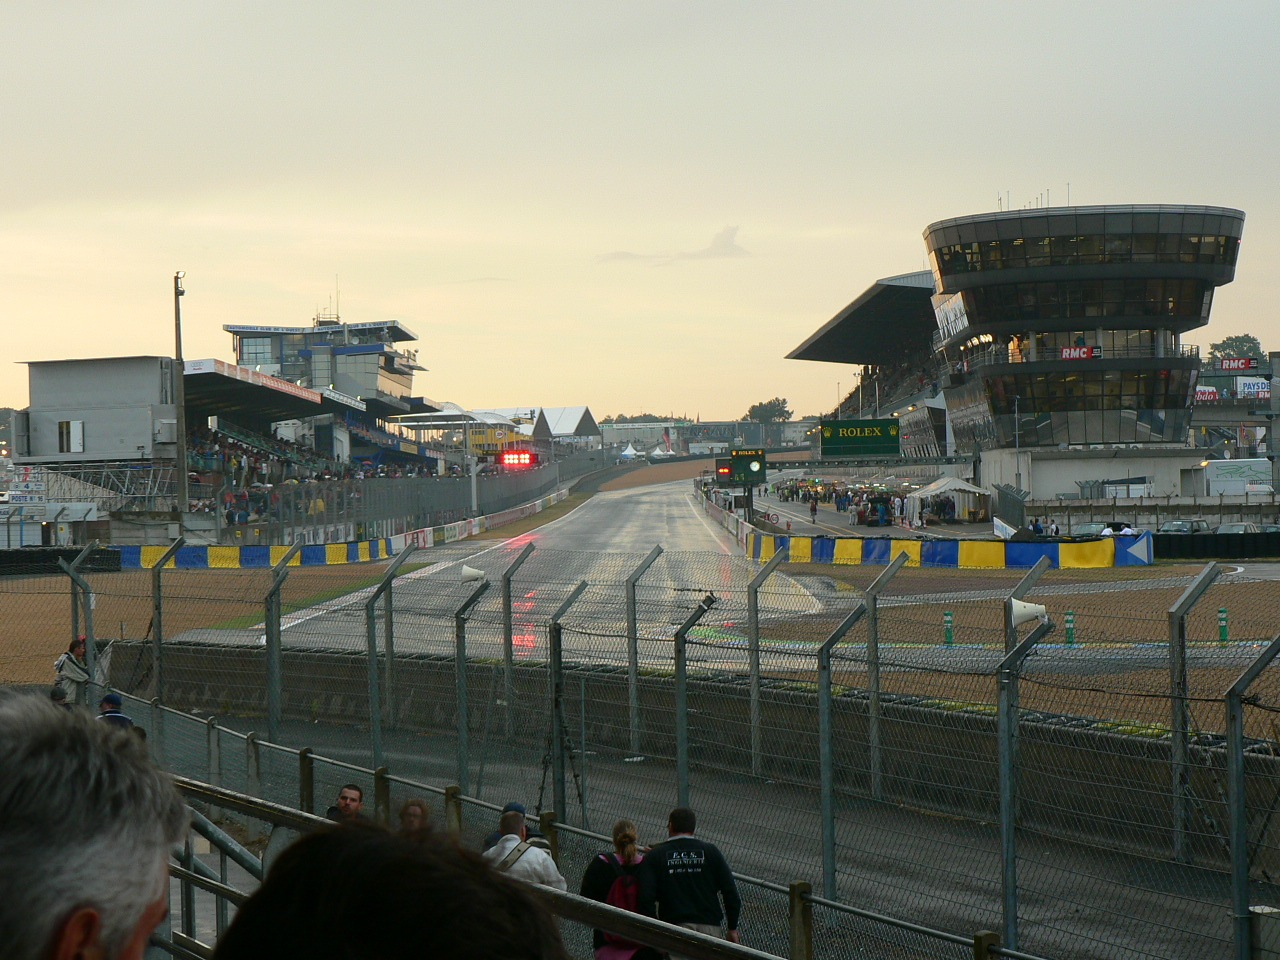 http://upload.wikimedia.org/wikipedia/commons/f/f3/Lemans_Circuit_Bugatti.JPG